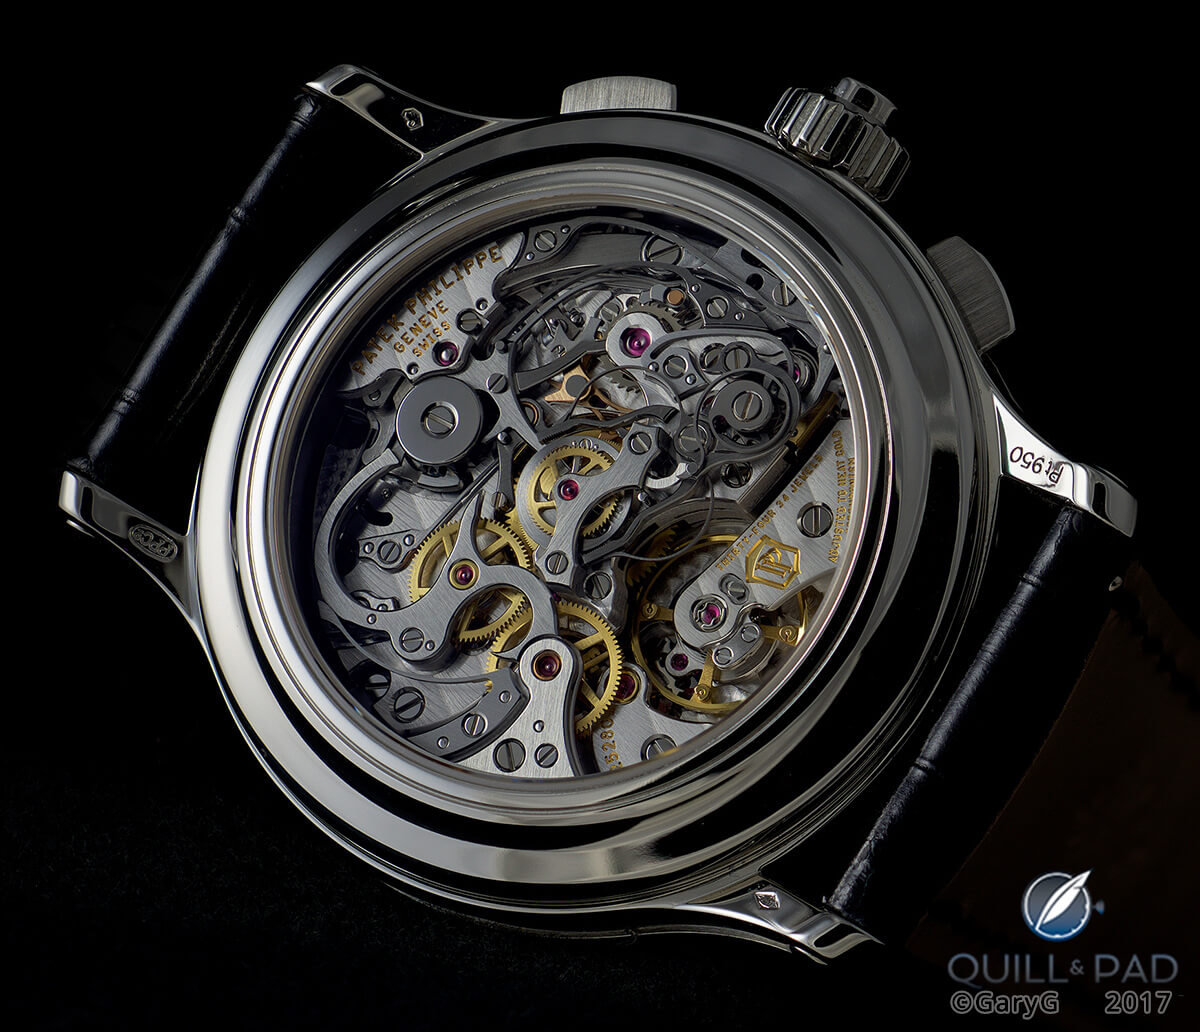 Beauty in action: Patek Philippe Caliber CHR 29-535 PS